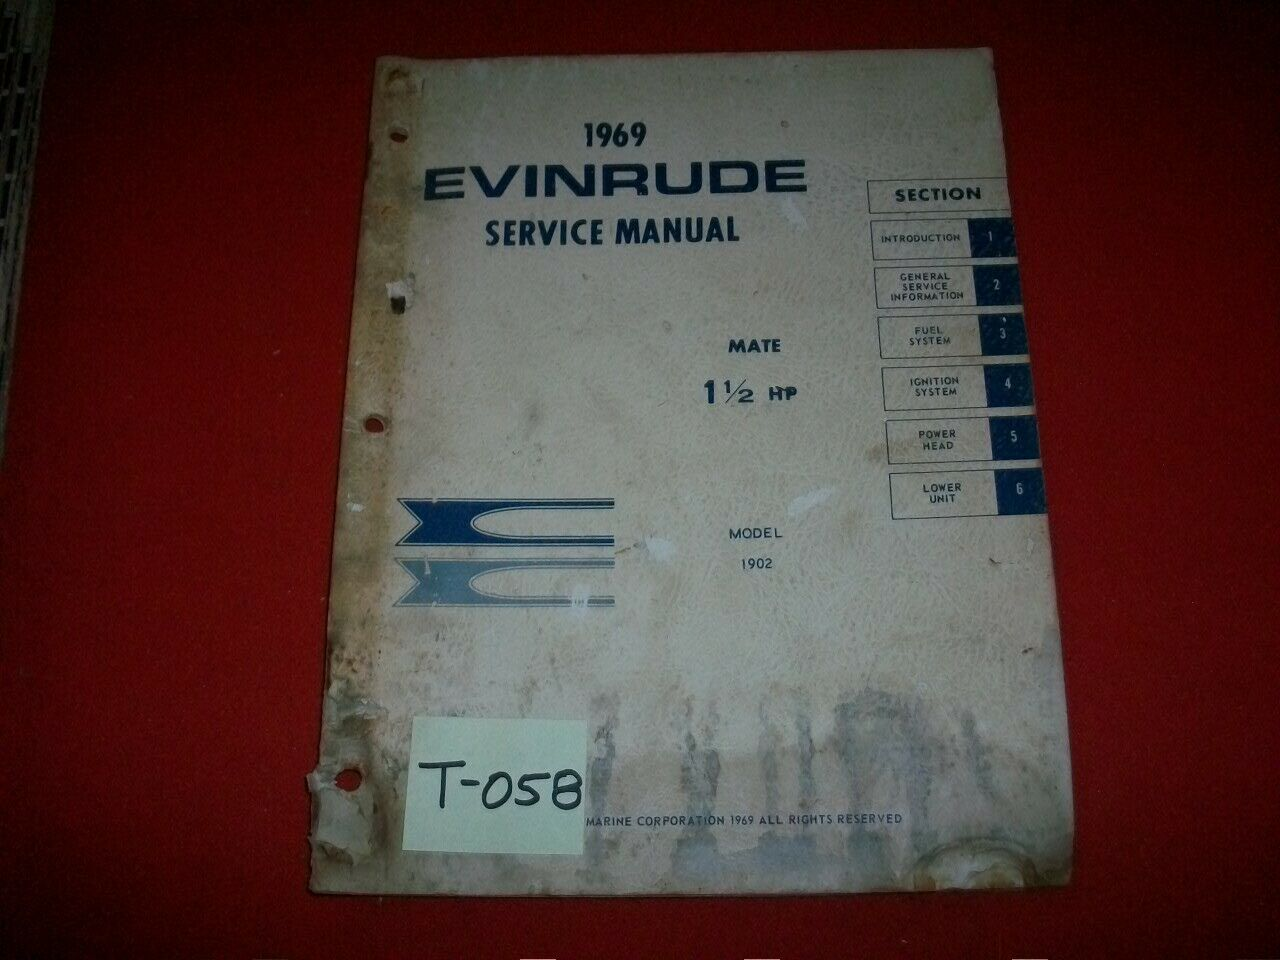 Vintage 1969 Evinrude Outboard Service Manual 1.5 Hp Mate 1 of 5Only 1  available ...